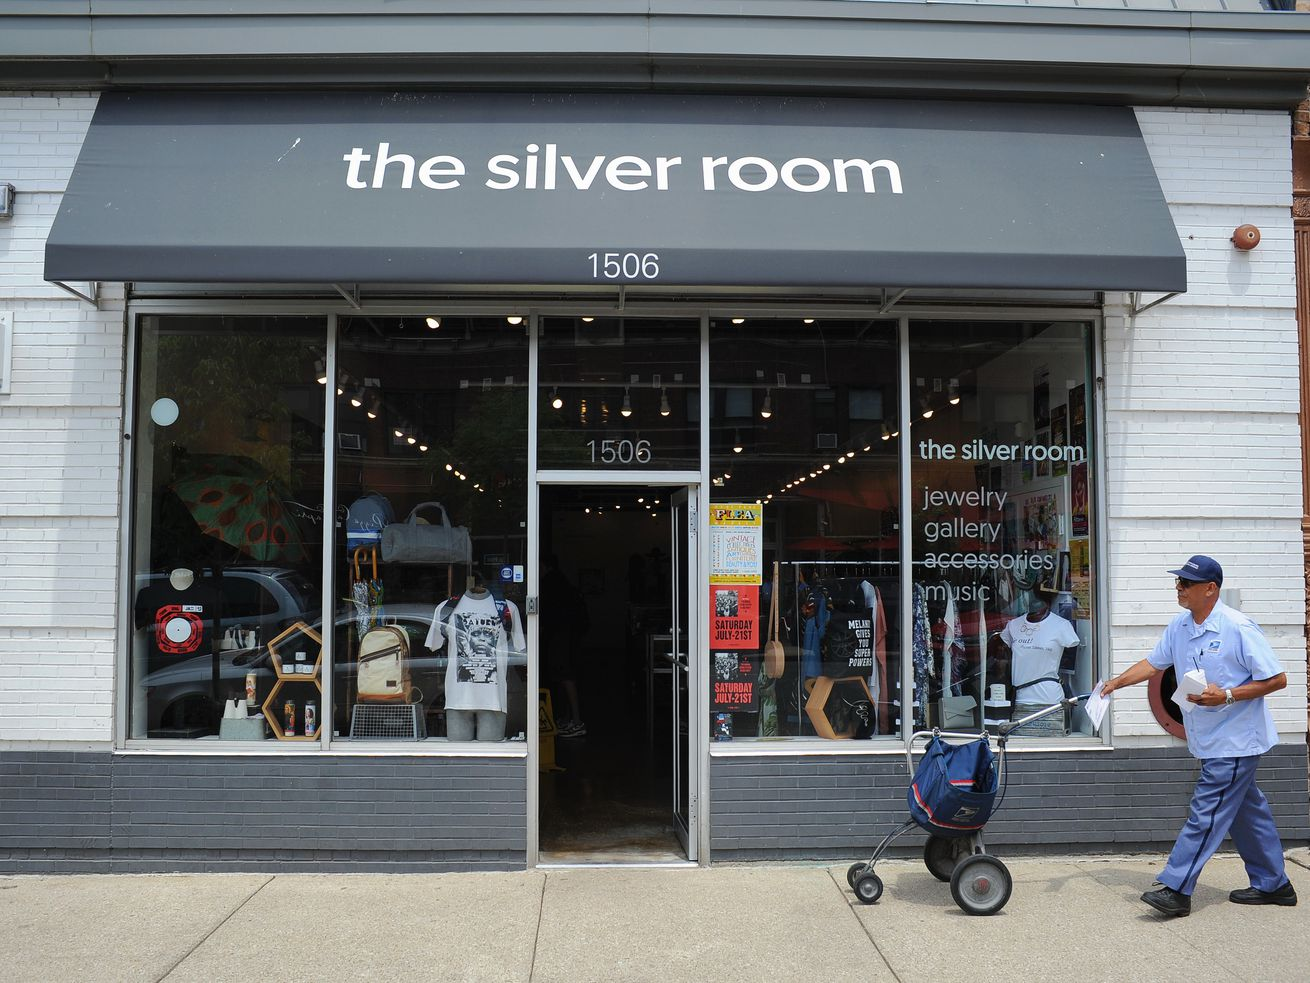 The Silver Room is a Hyde Park-based boutique specializing in creative jewelry and accessories and also hosts arts shows and music parties.